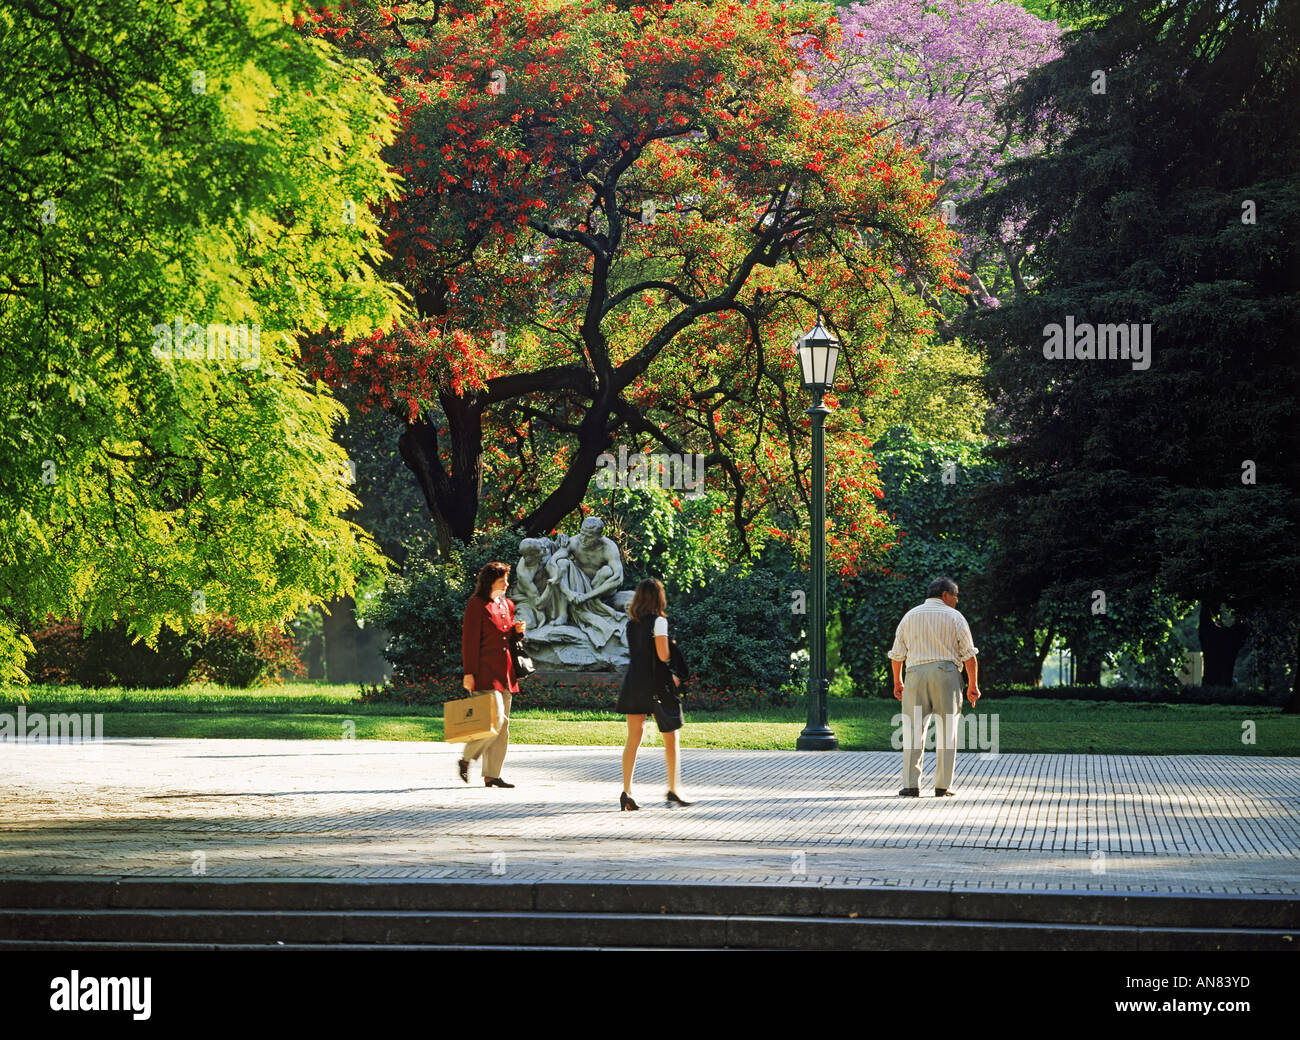 People in Plaza San Martin in central Buenos Aires - Stock Image